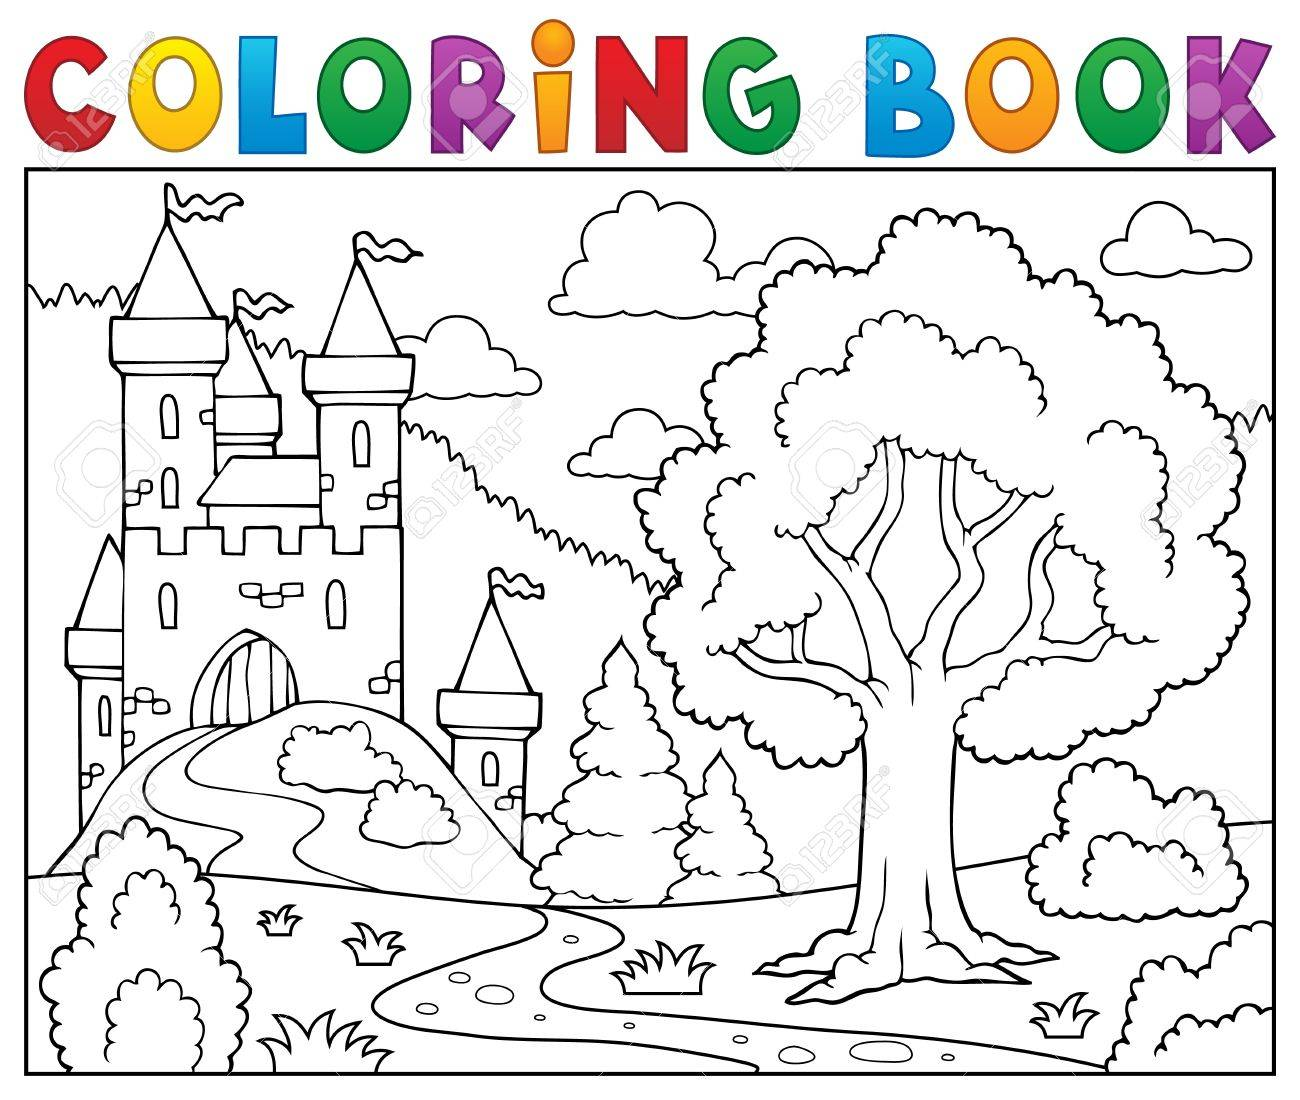 Coloring book castle and tree. - 53429580